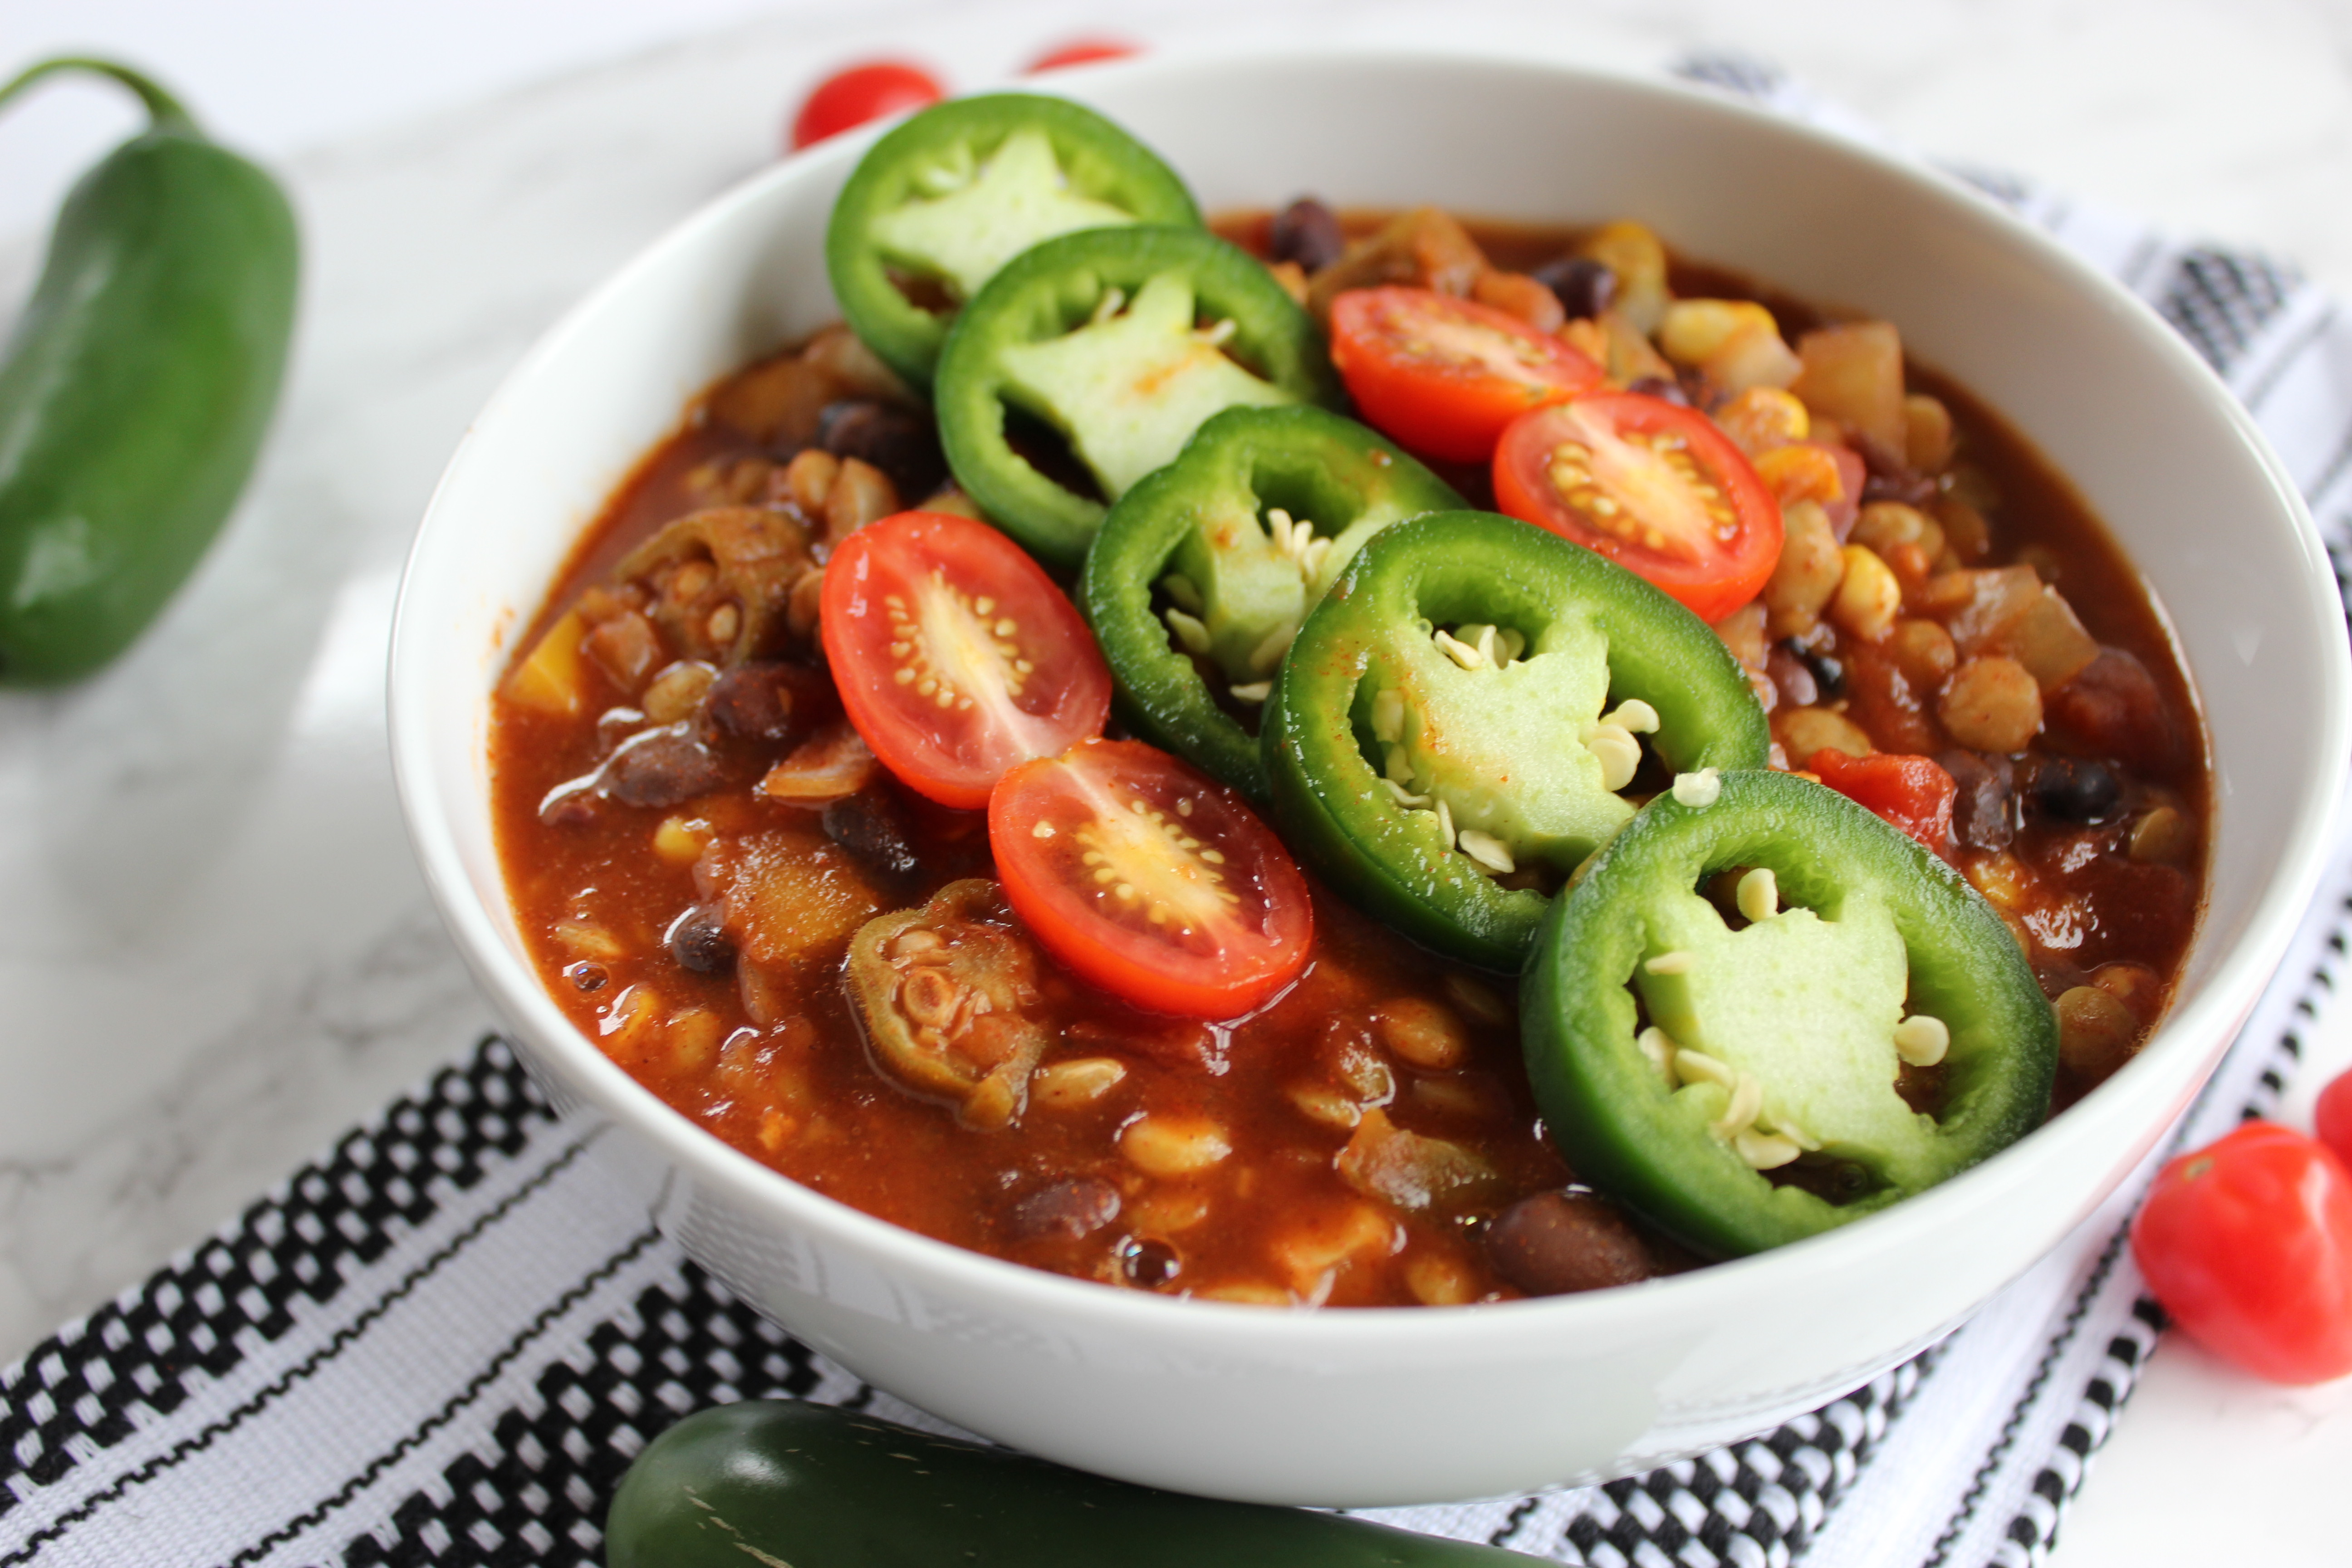 Slow Cooker Chili with Lentils, Corn, Black Beans, and Okra [Vegan & Oil-Free]